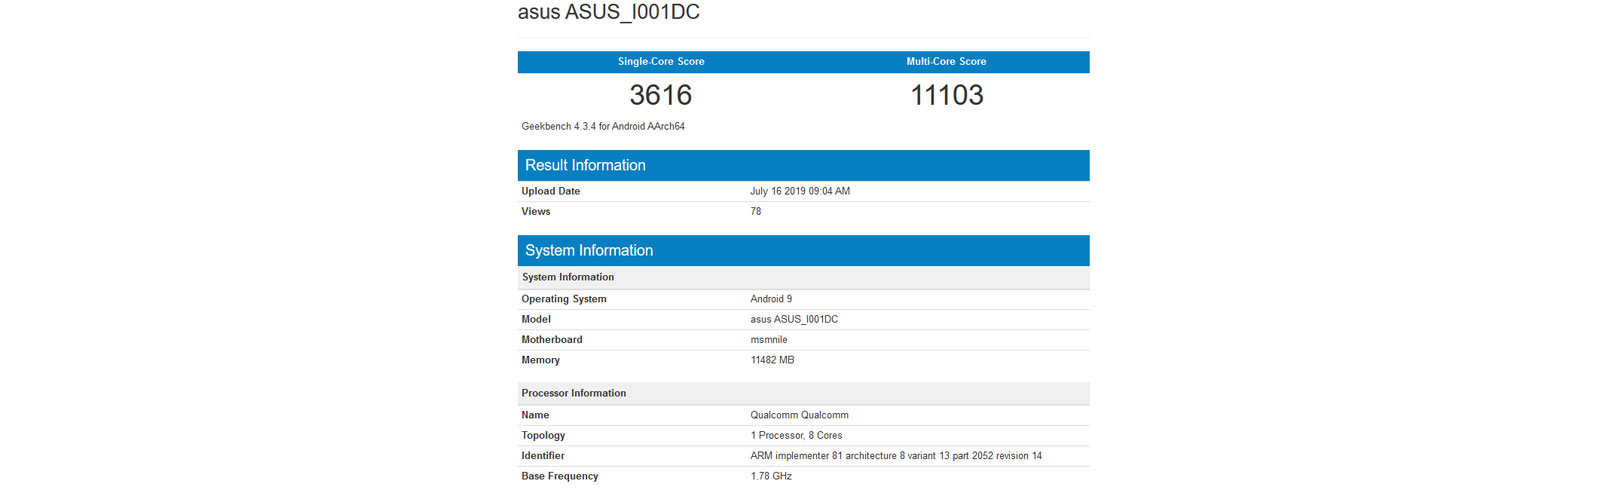 ROG Phone 2 with Snapdragon 855 Plus appears on Geekbench